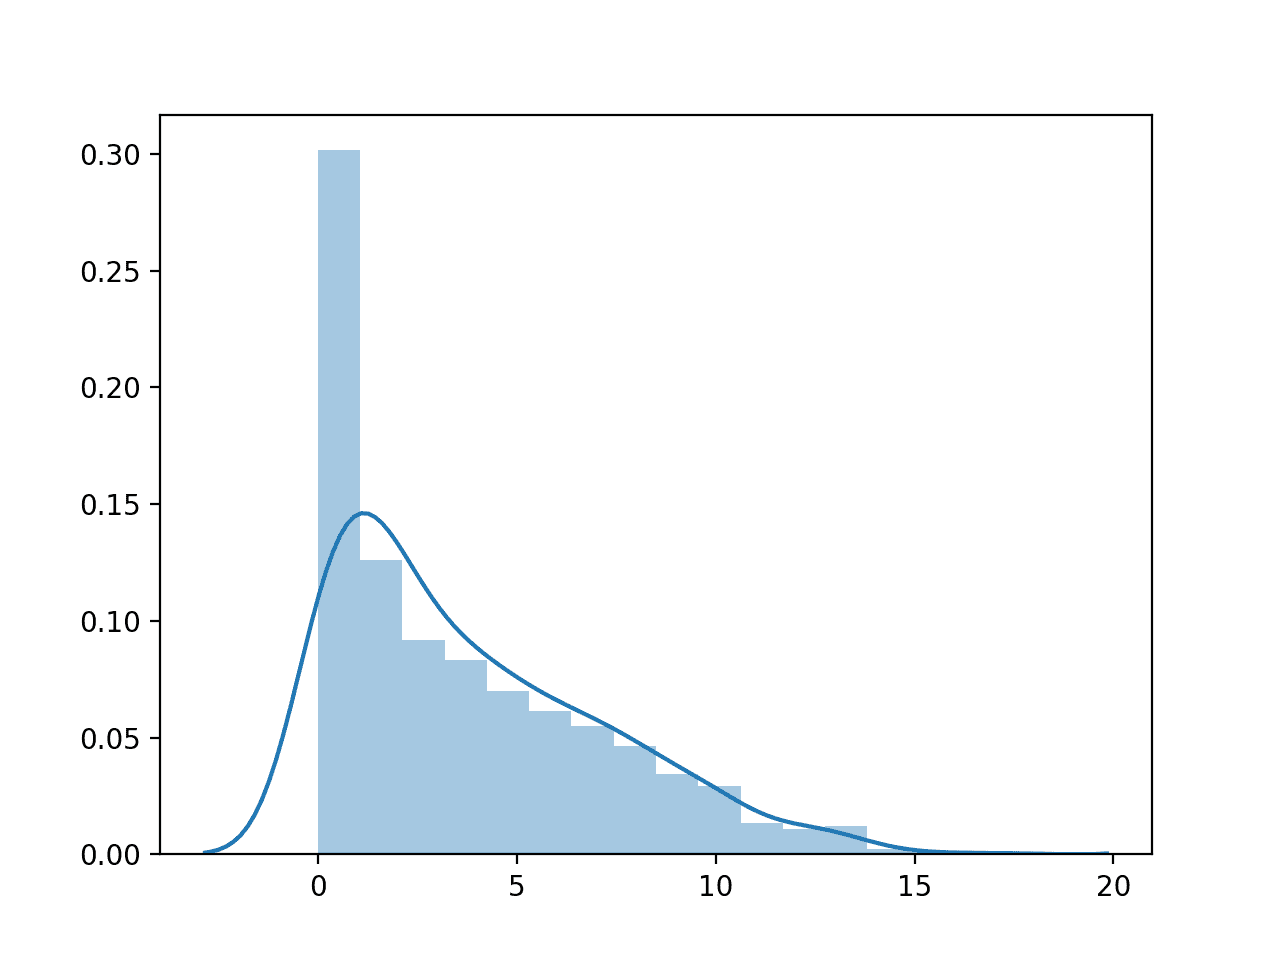 Histogram Plot of Number of Times Pregnant Numerical Variable